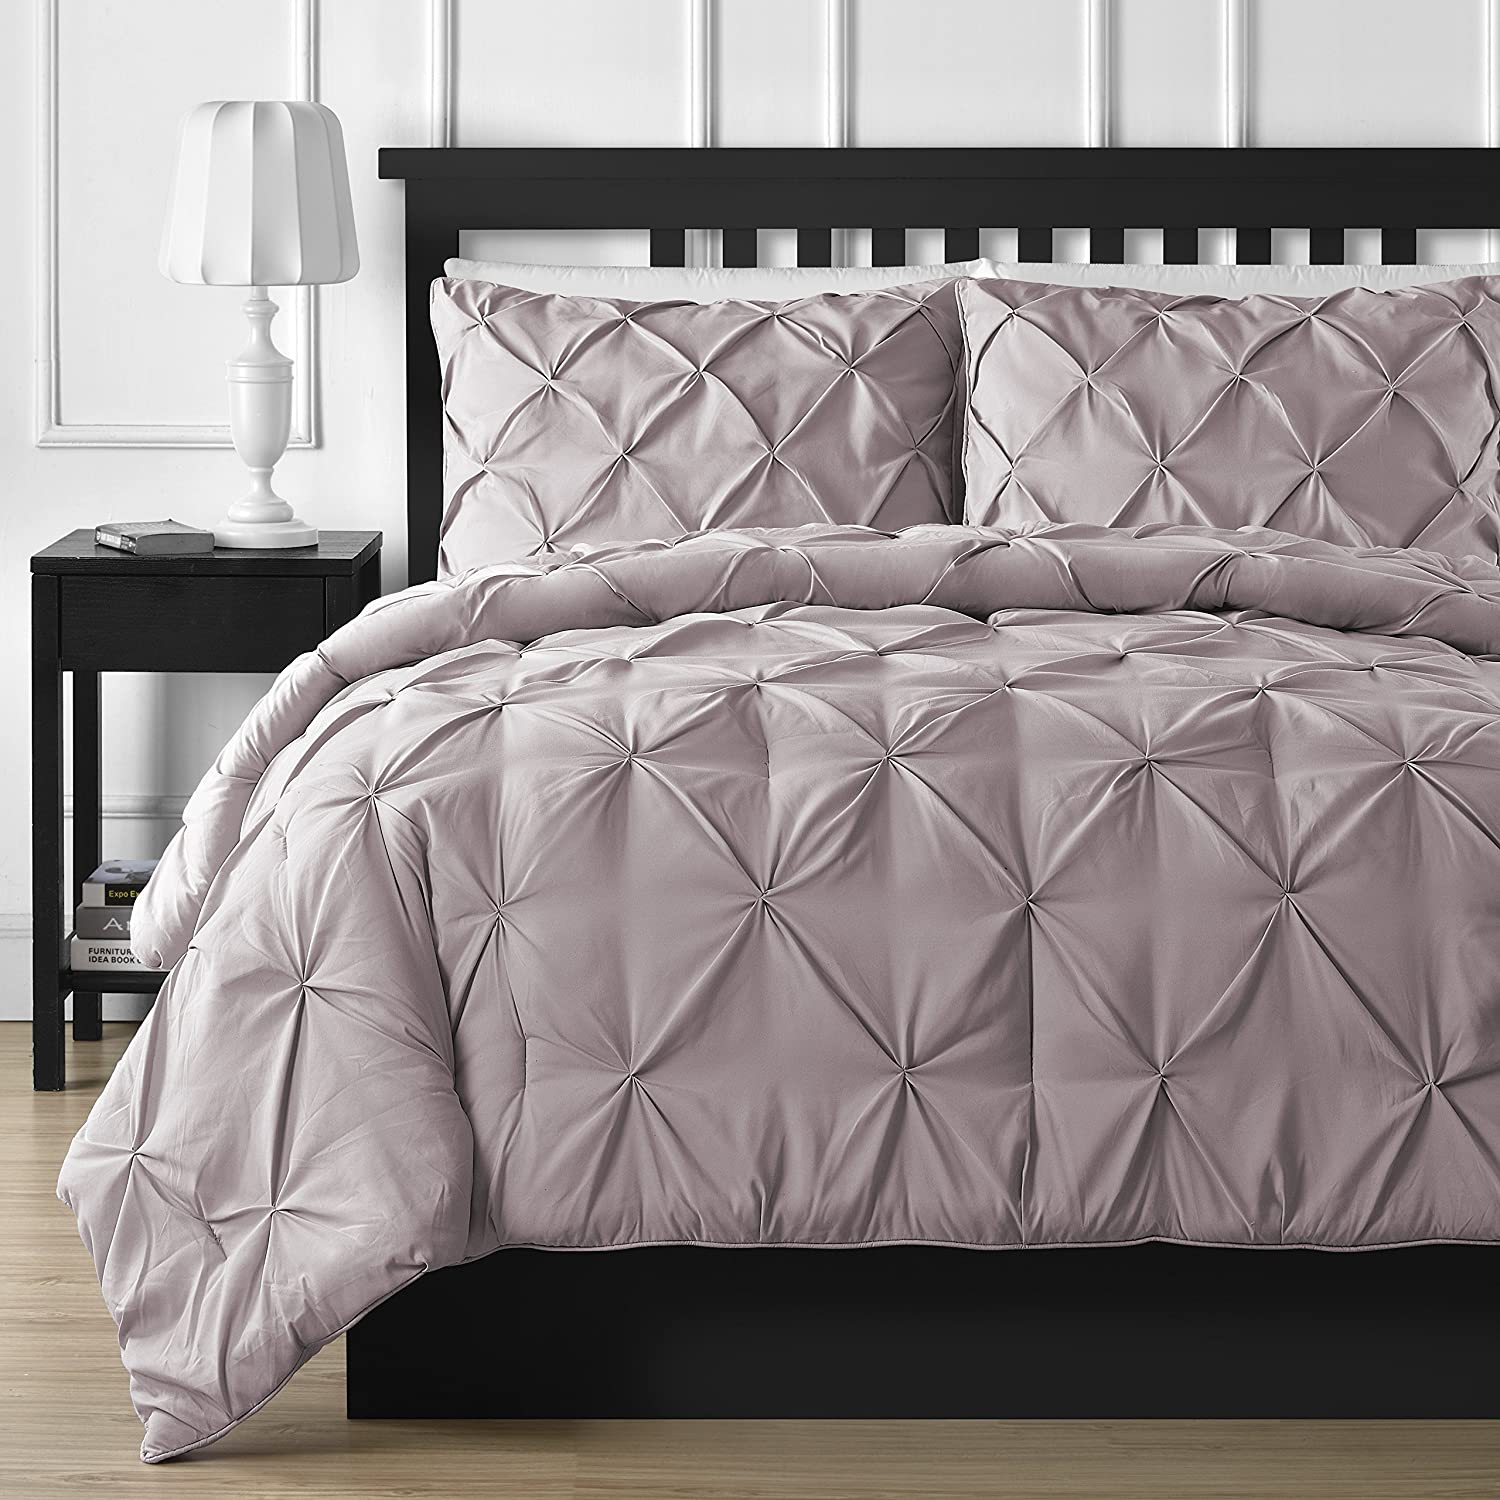 bedding mauve comforter dusty grande rose quilted p oversized allure silk bedspread